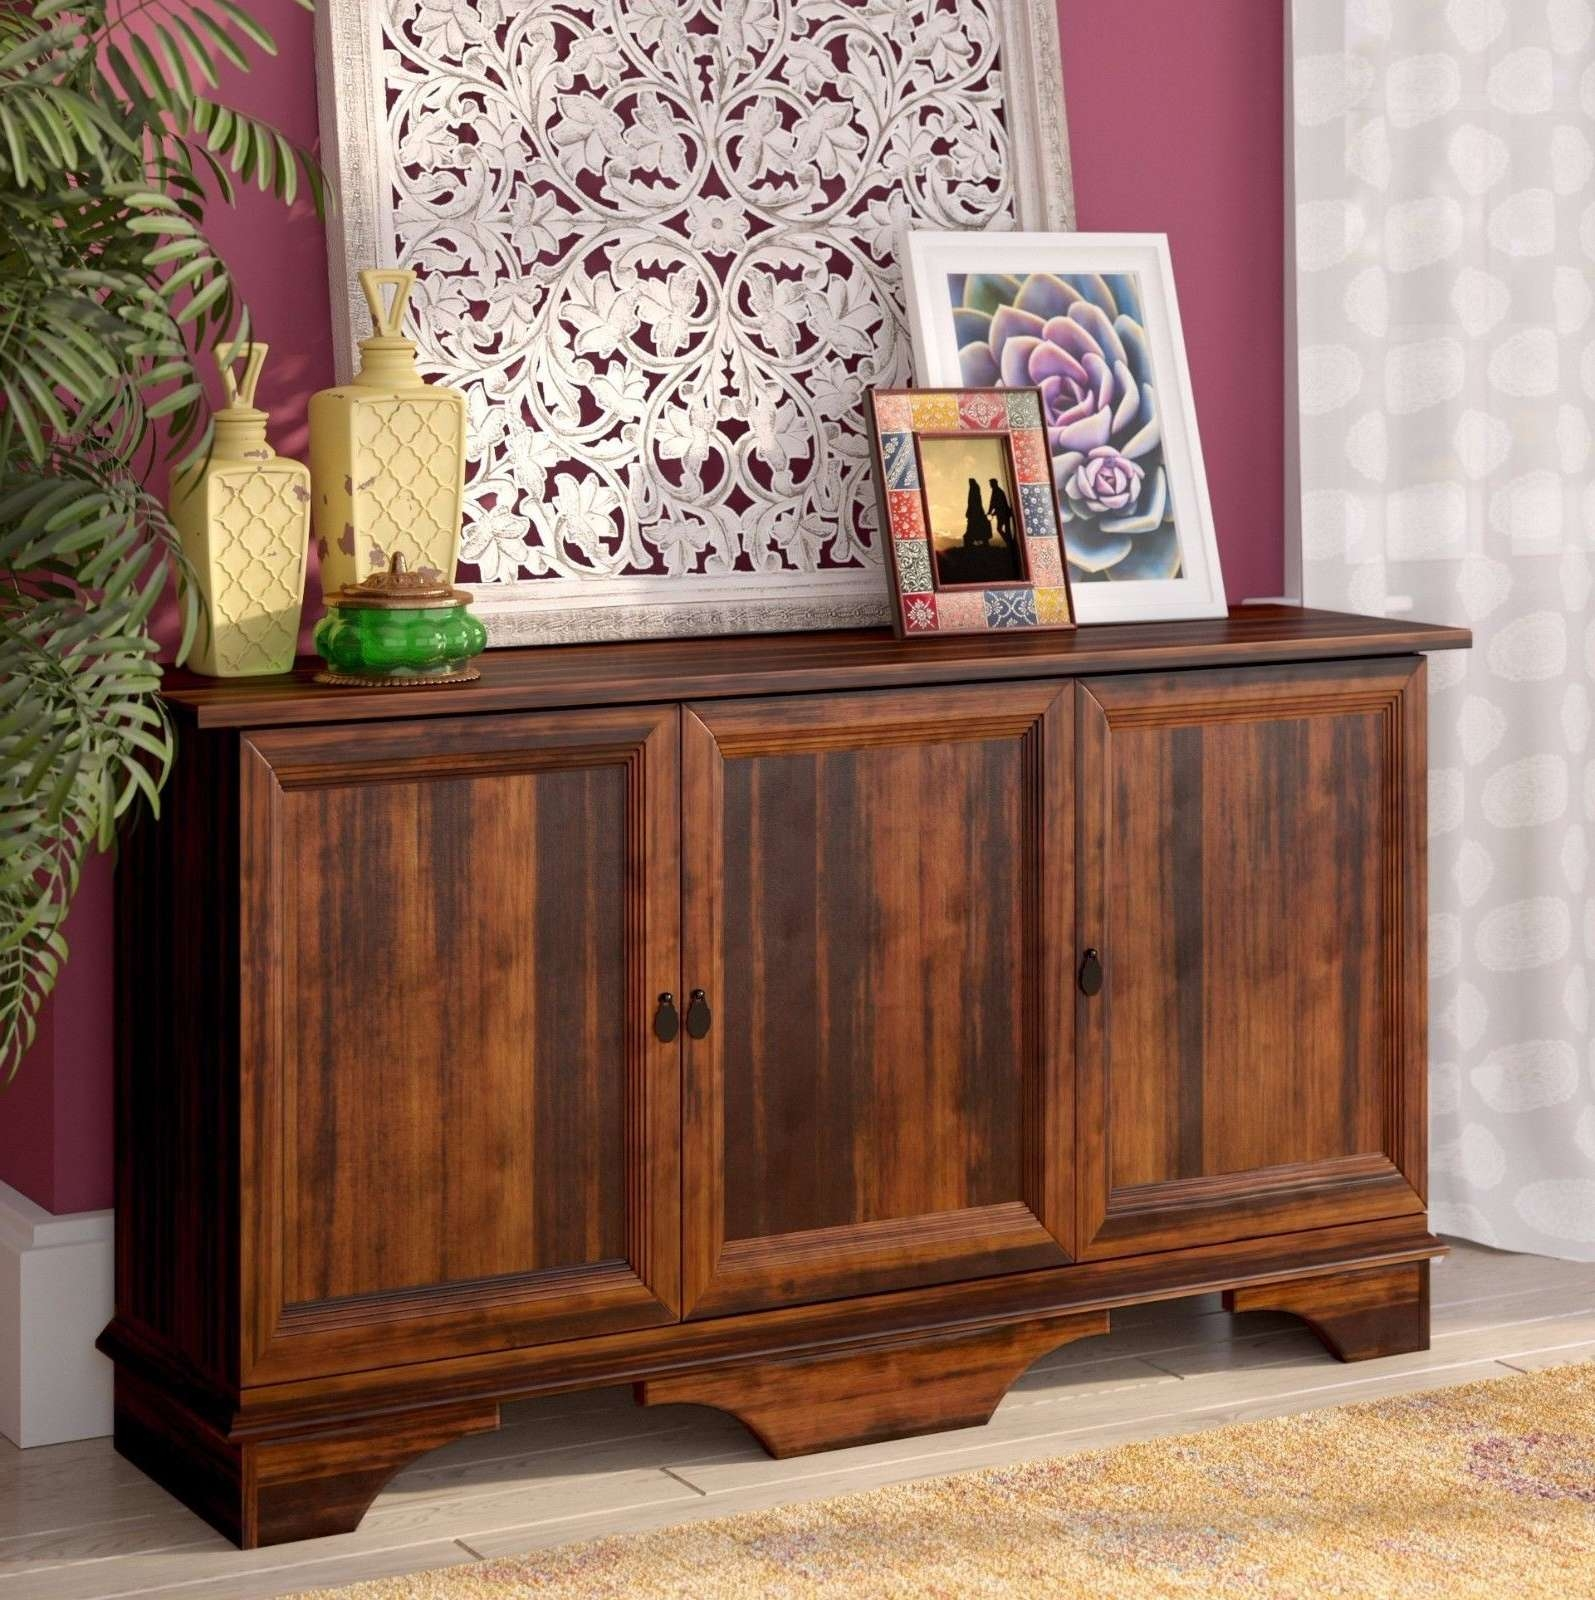 Rustic/primitive Sideboards And Buffets | Ebay Pertaining To Rustic Buffet Sideboards (View 10 of 20)